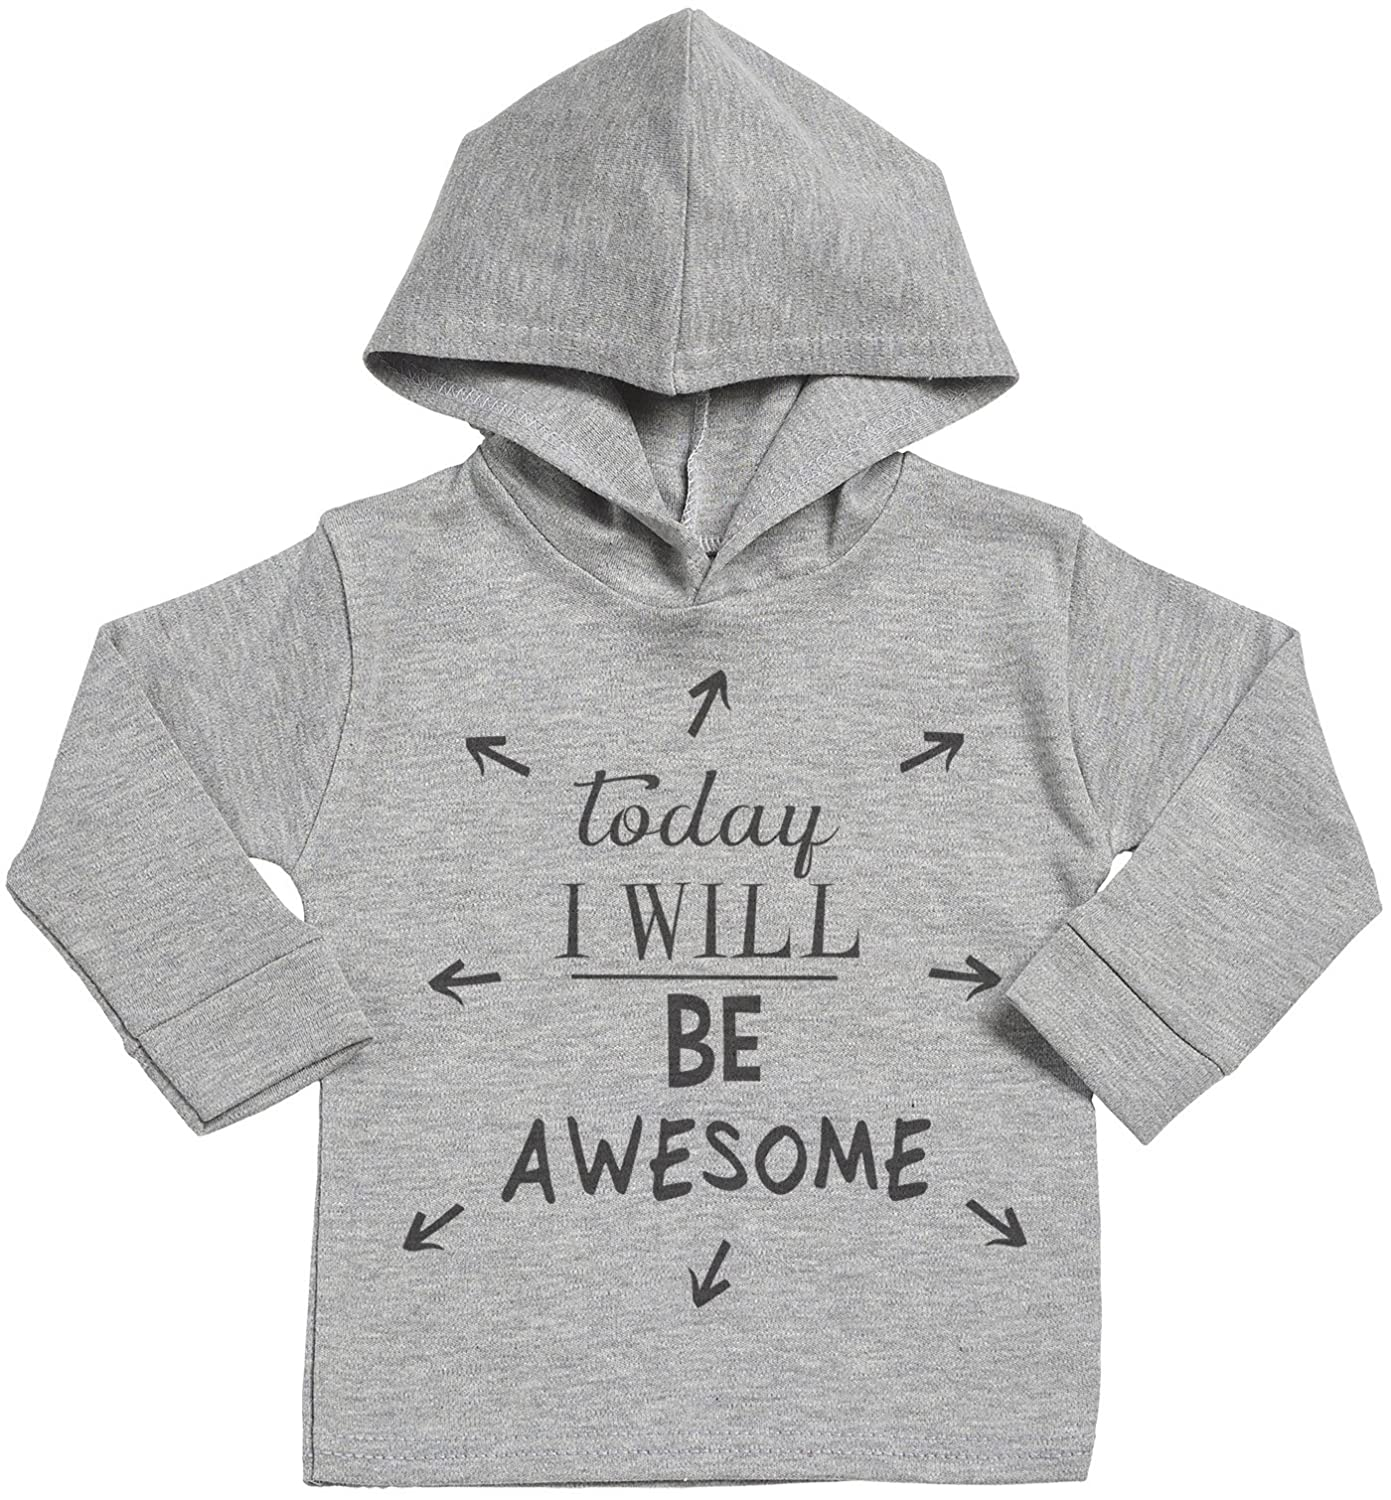 Baby Gift Baby Sweatshirt with Hood SR Today I Will Be Awesome Cotton Baby Hoodie Baby Hoody